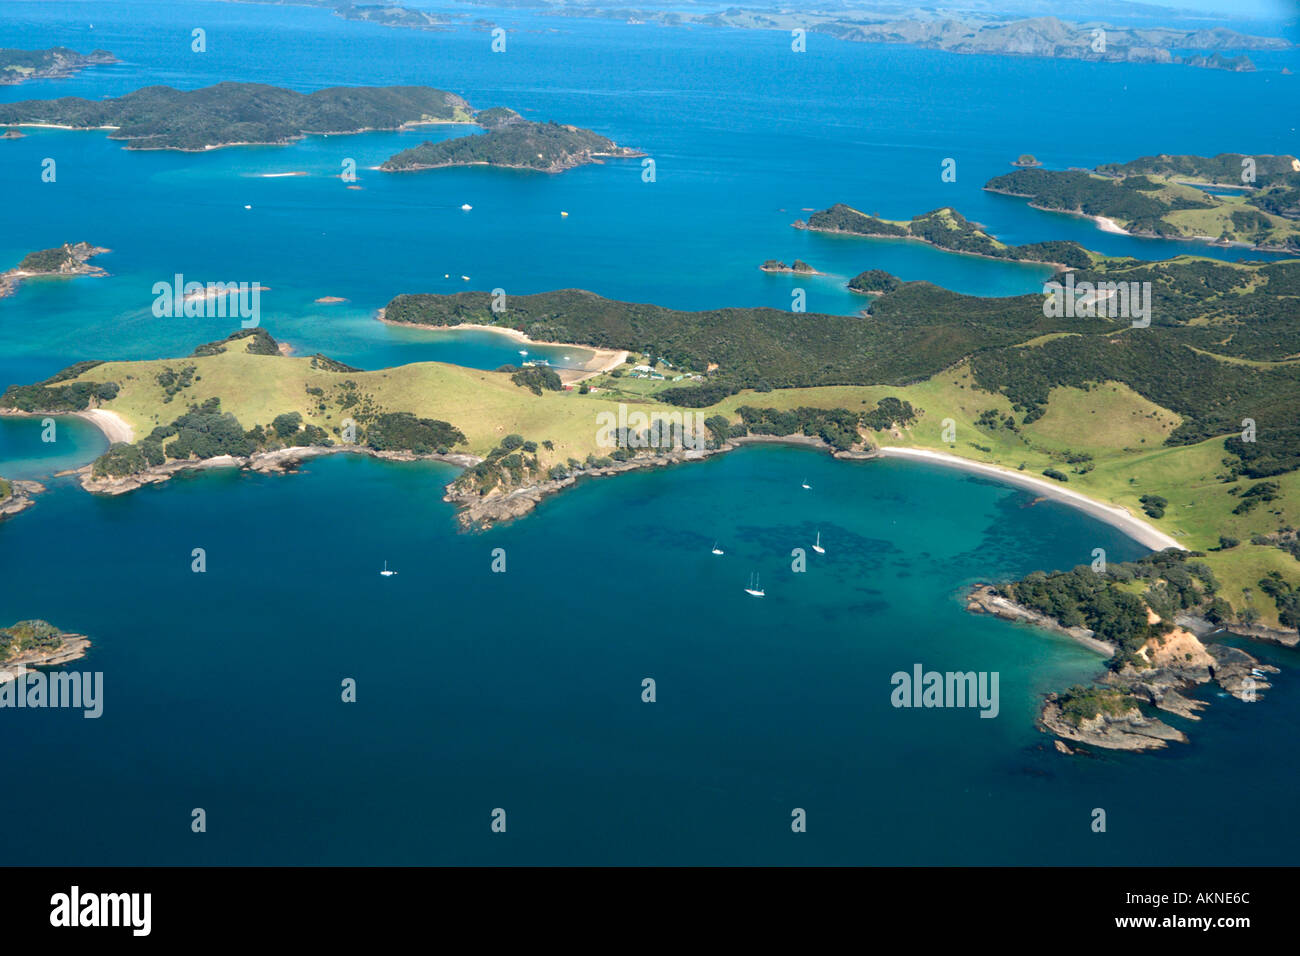 Vue aérienne de la baie des îles à partir d'un petit avion, Northland, North Island, New Zealand Photo Stock